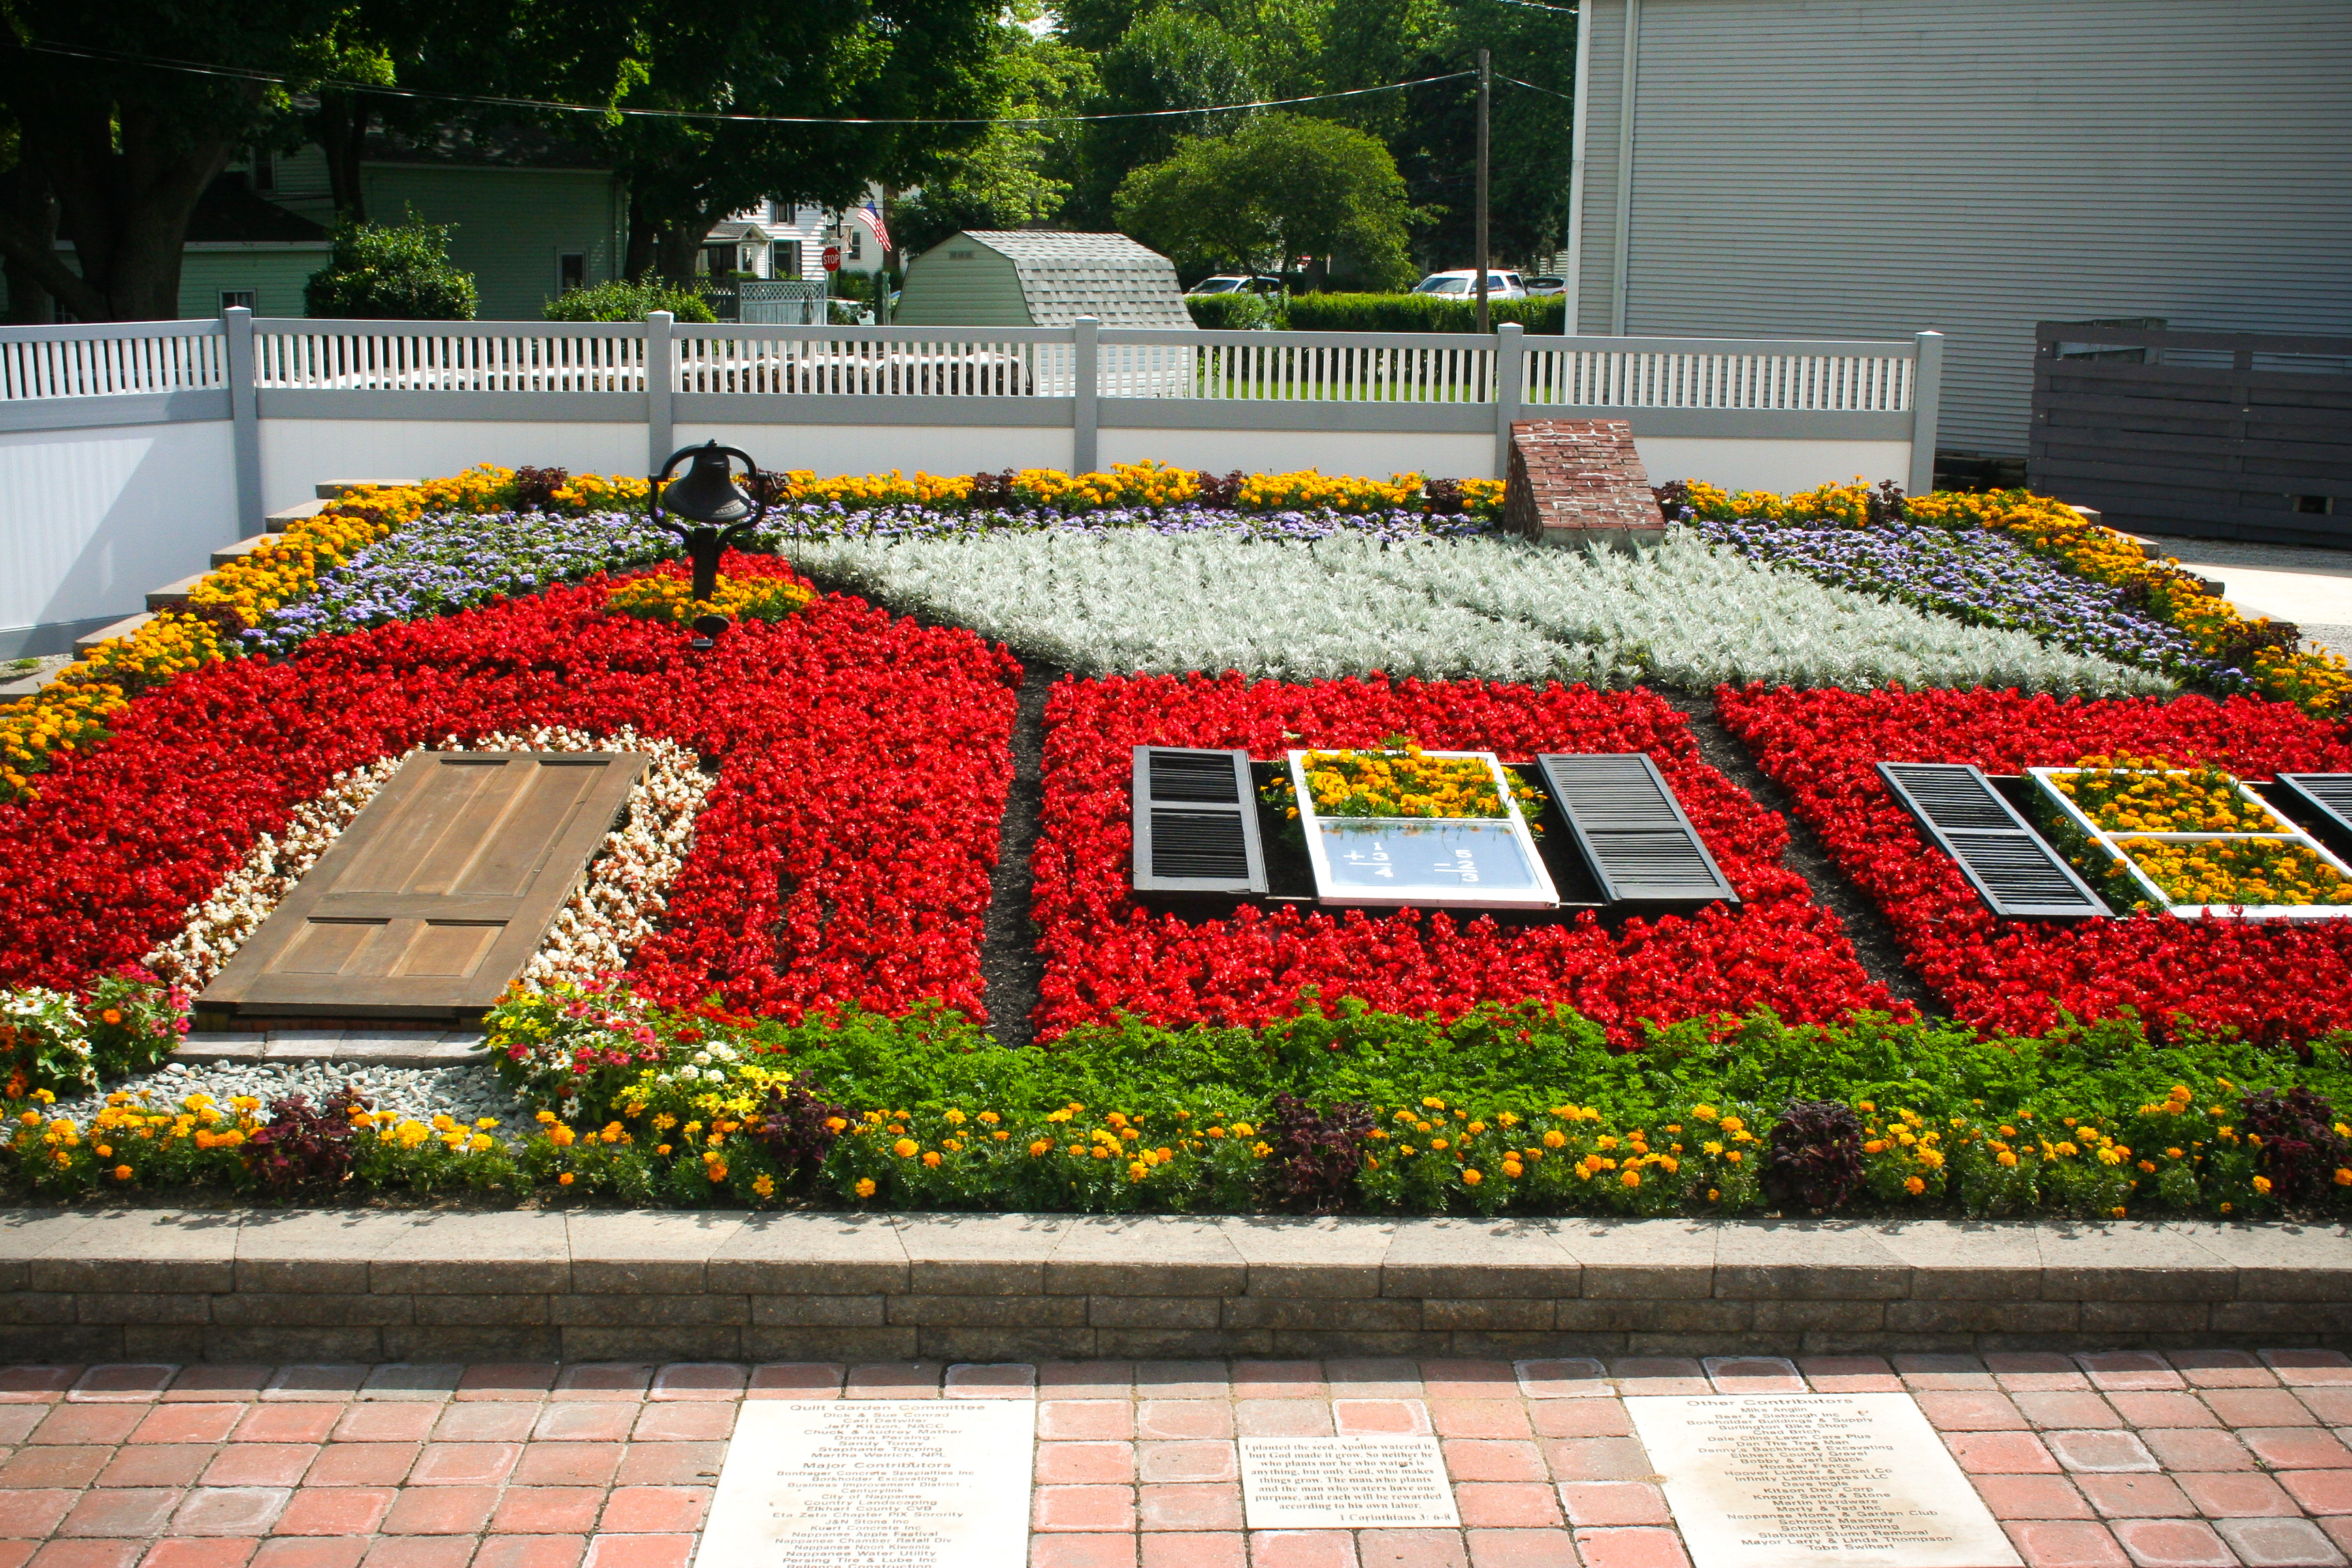 QuiltGardens_AmishCountry-NothernIndiana-USA-2